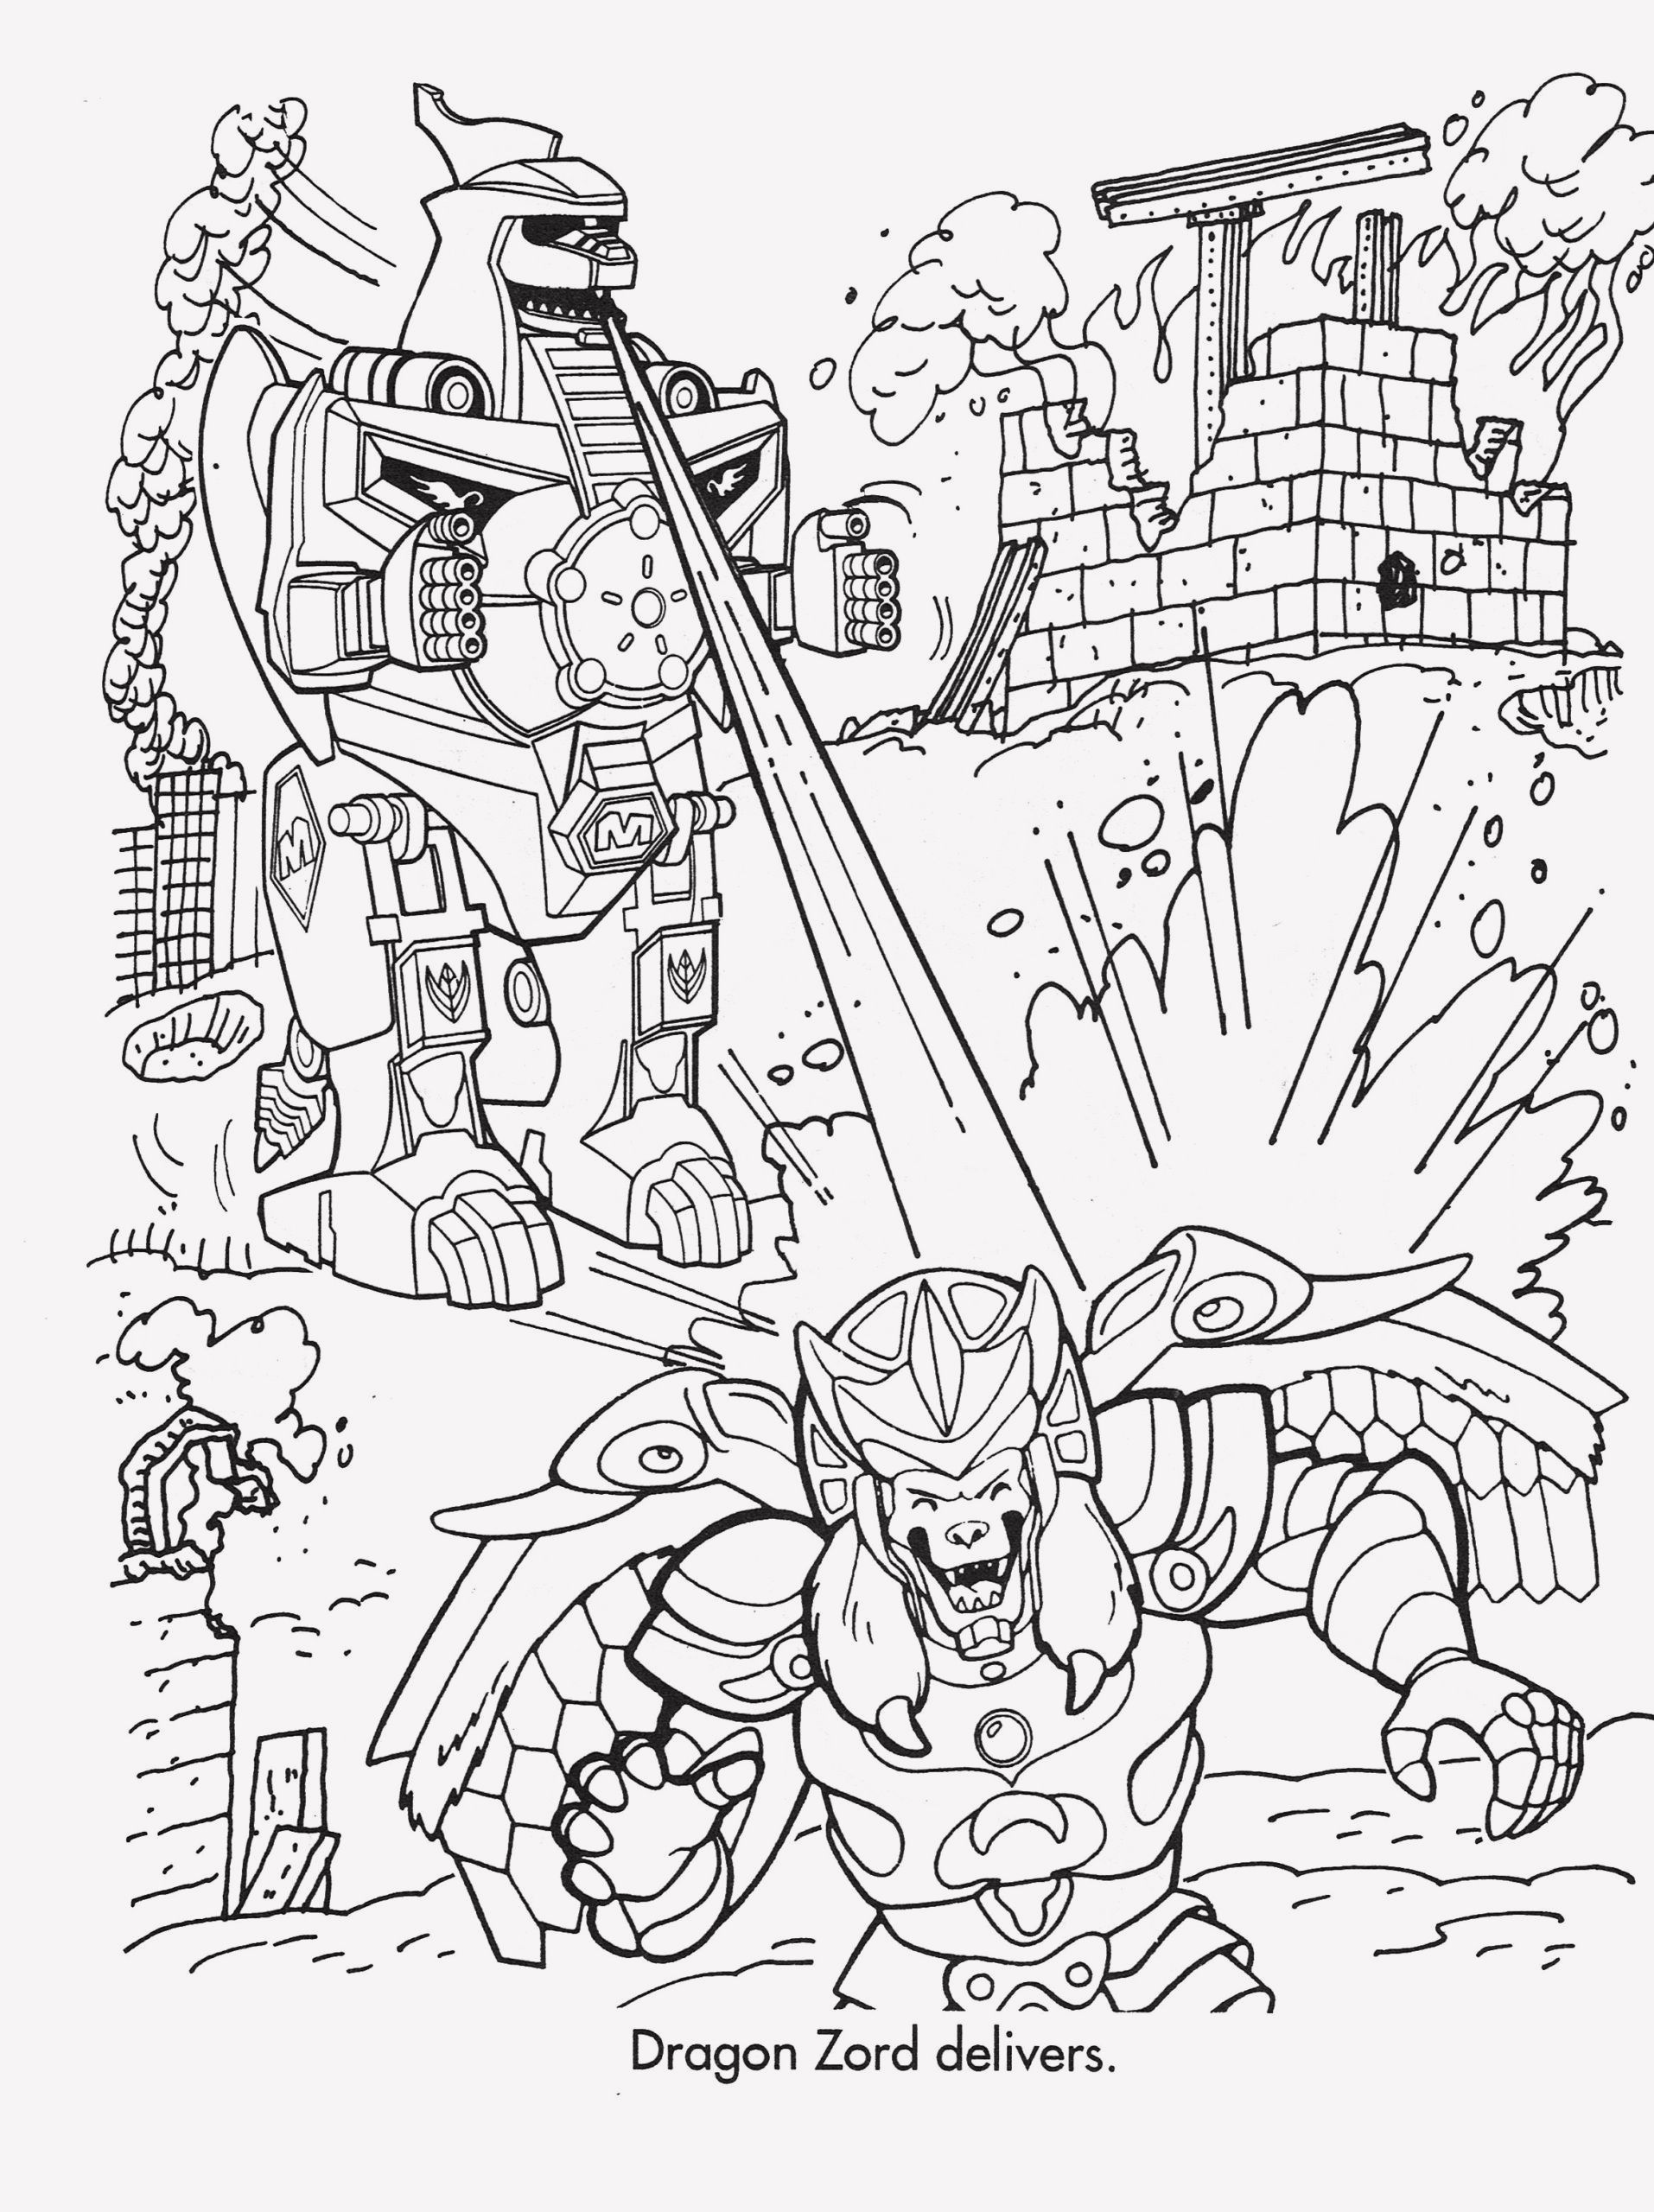 18 Power Rangers Beast Morphers Coloring Pages In 2020 Angel Coloring Pages Coloring Pages To Print Coloring Pages